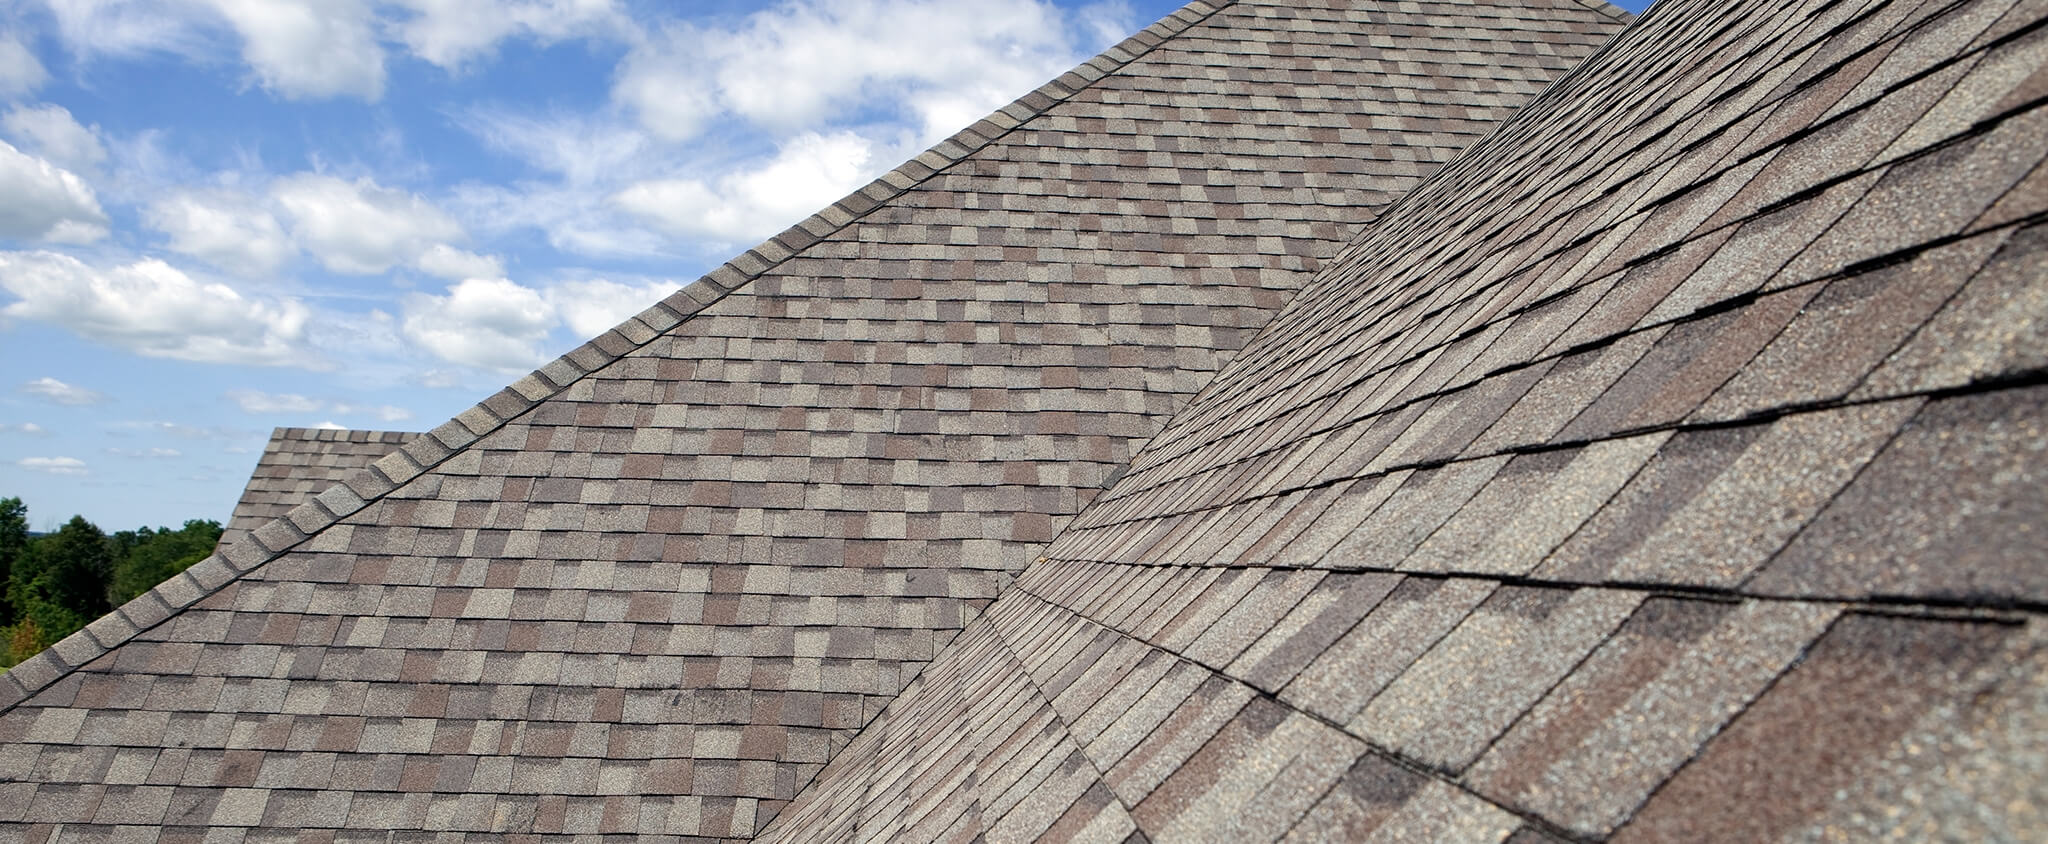 roof with brown colored shingles